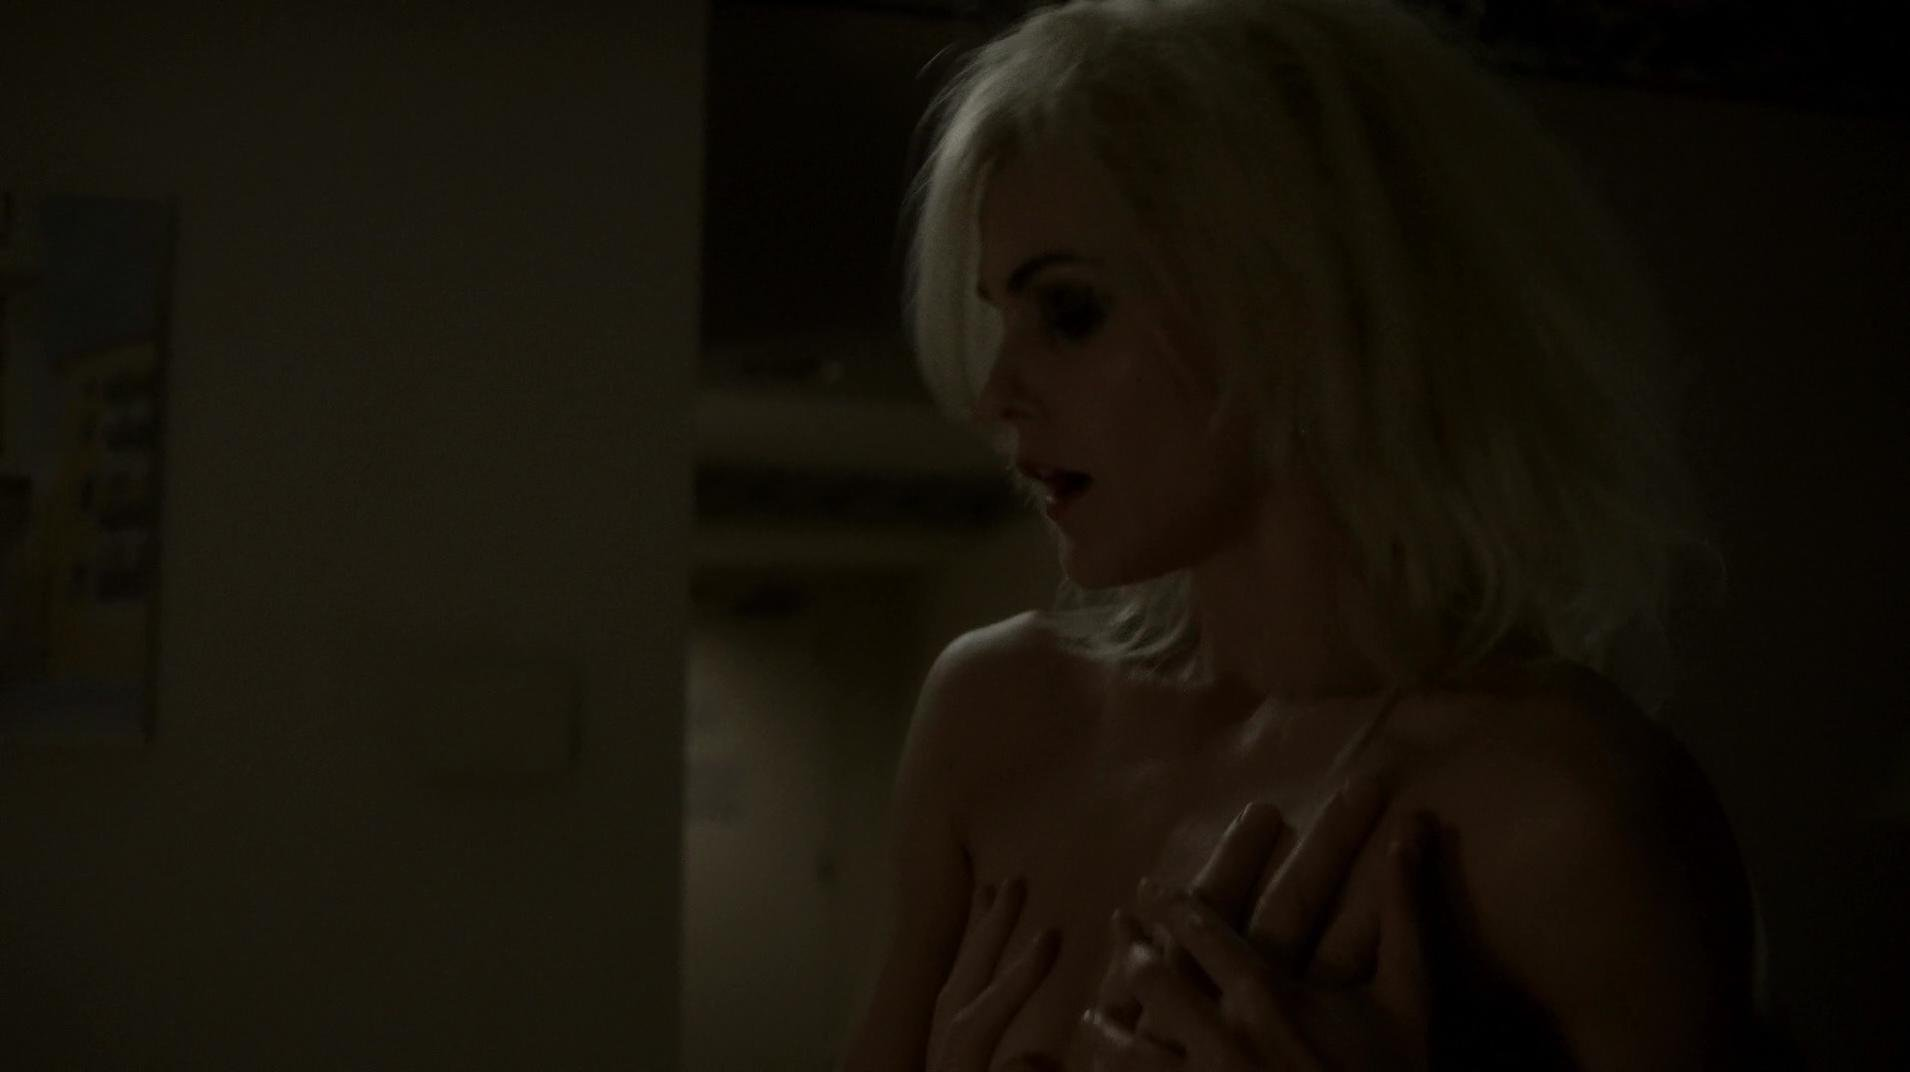 Keri Russell nude - The Americans s02e01 (2014)